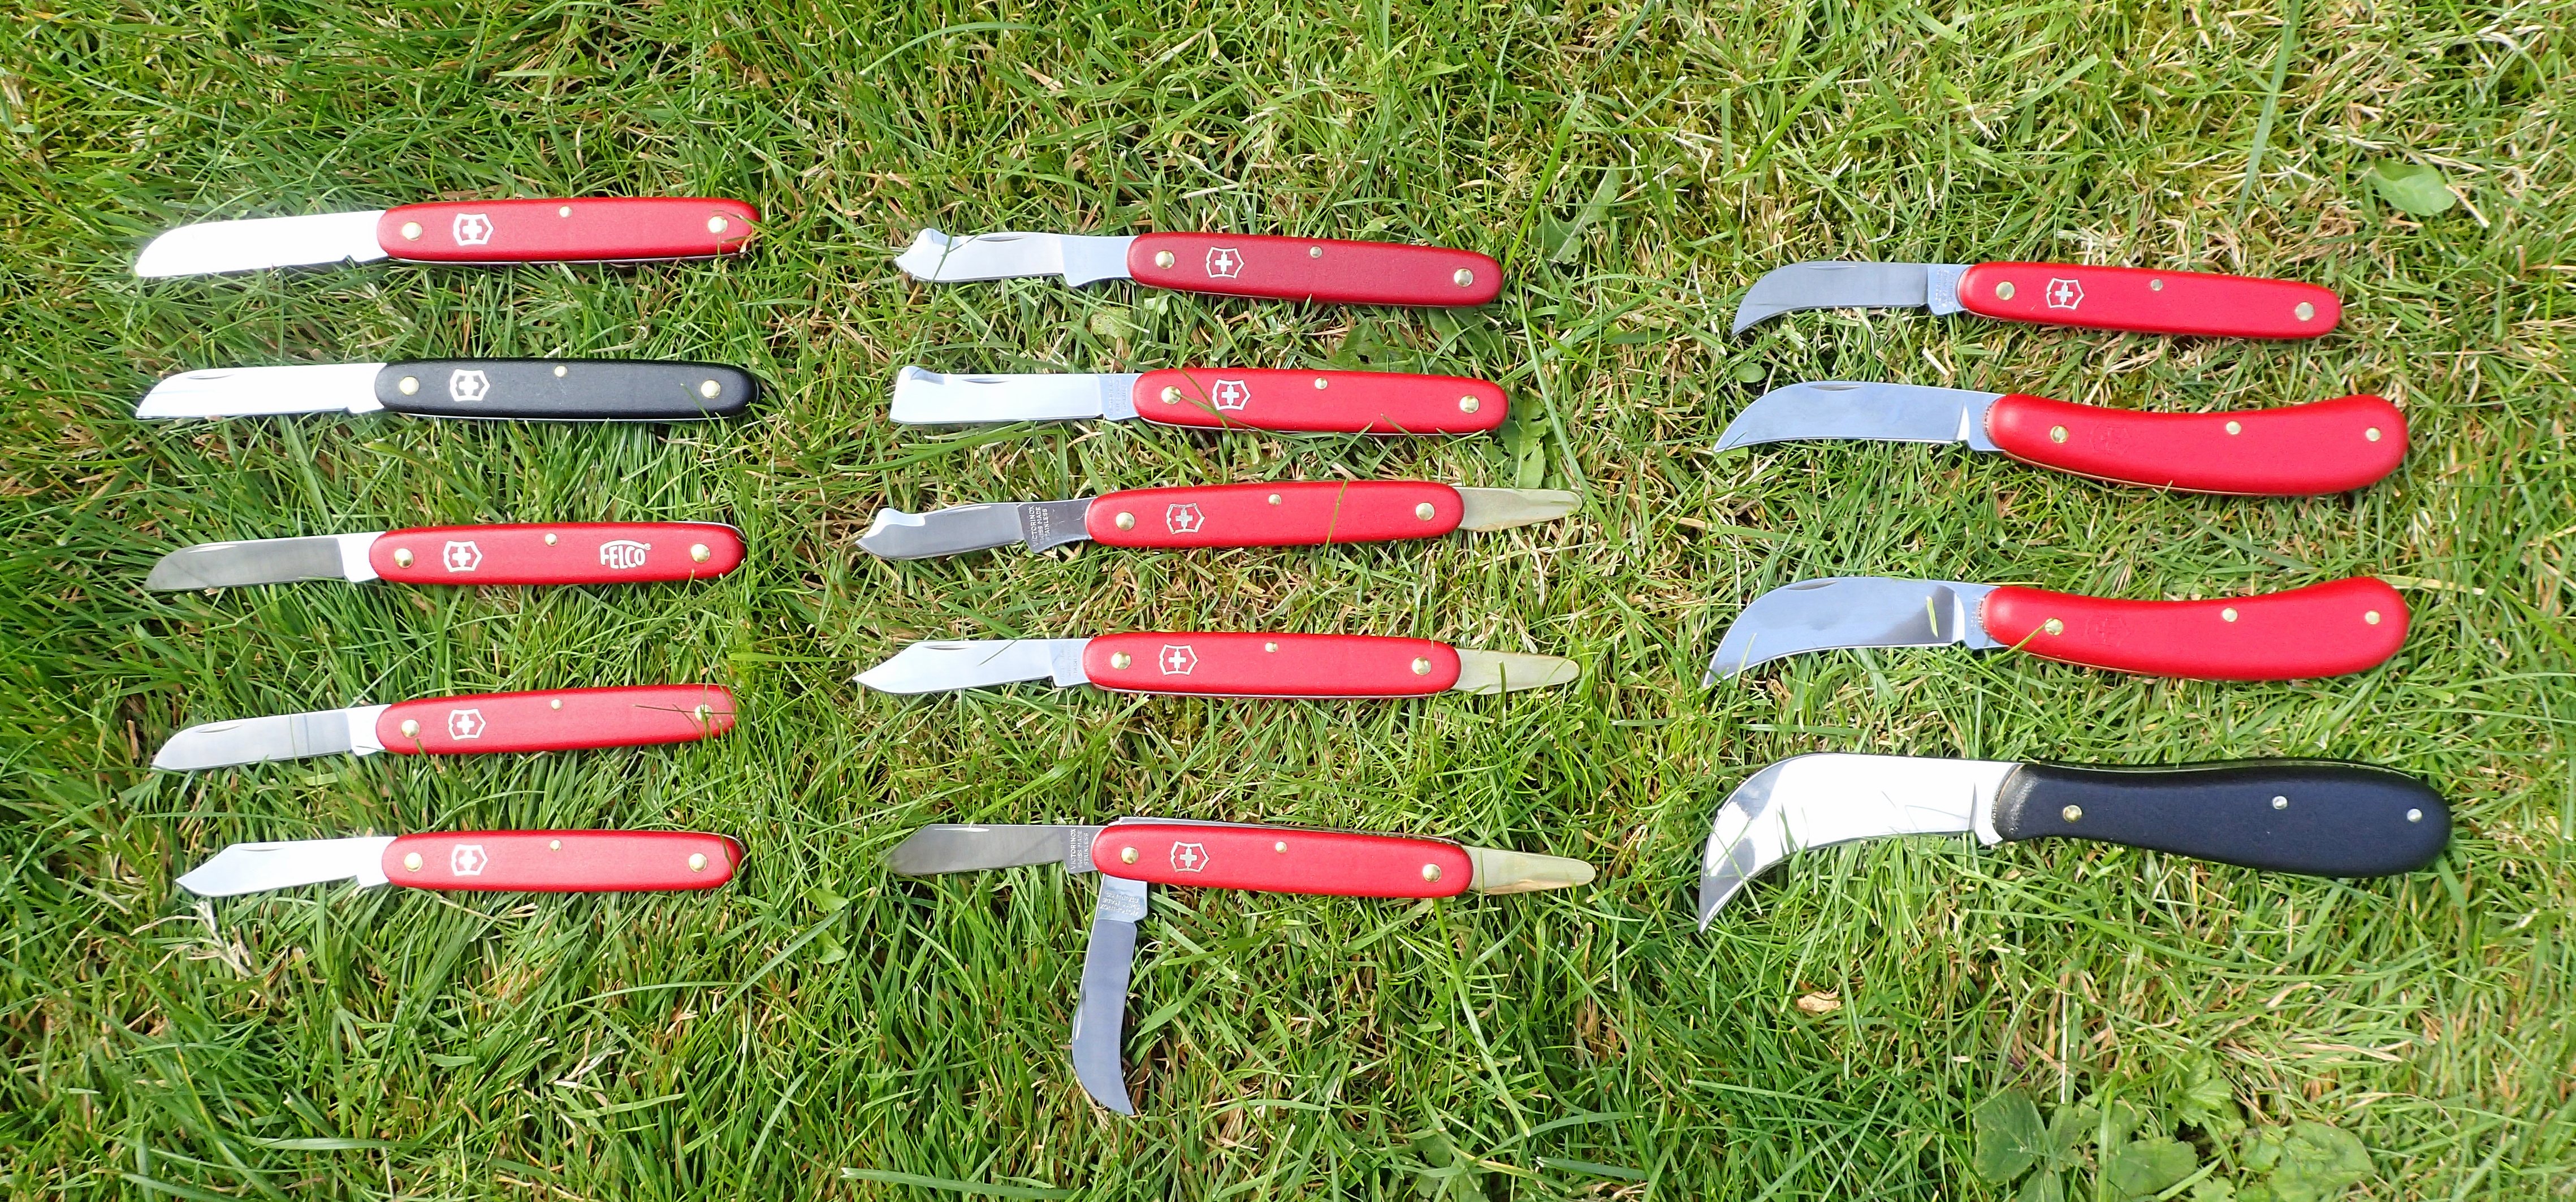 The majority of the range of available horticultural knives from Victorinox